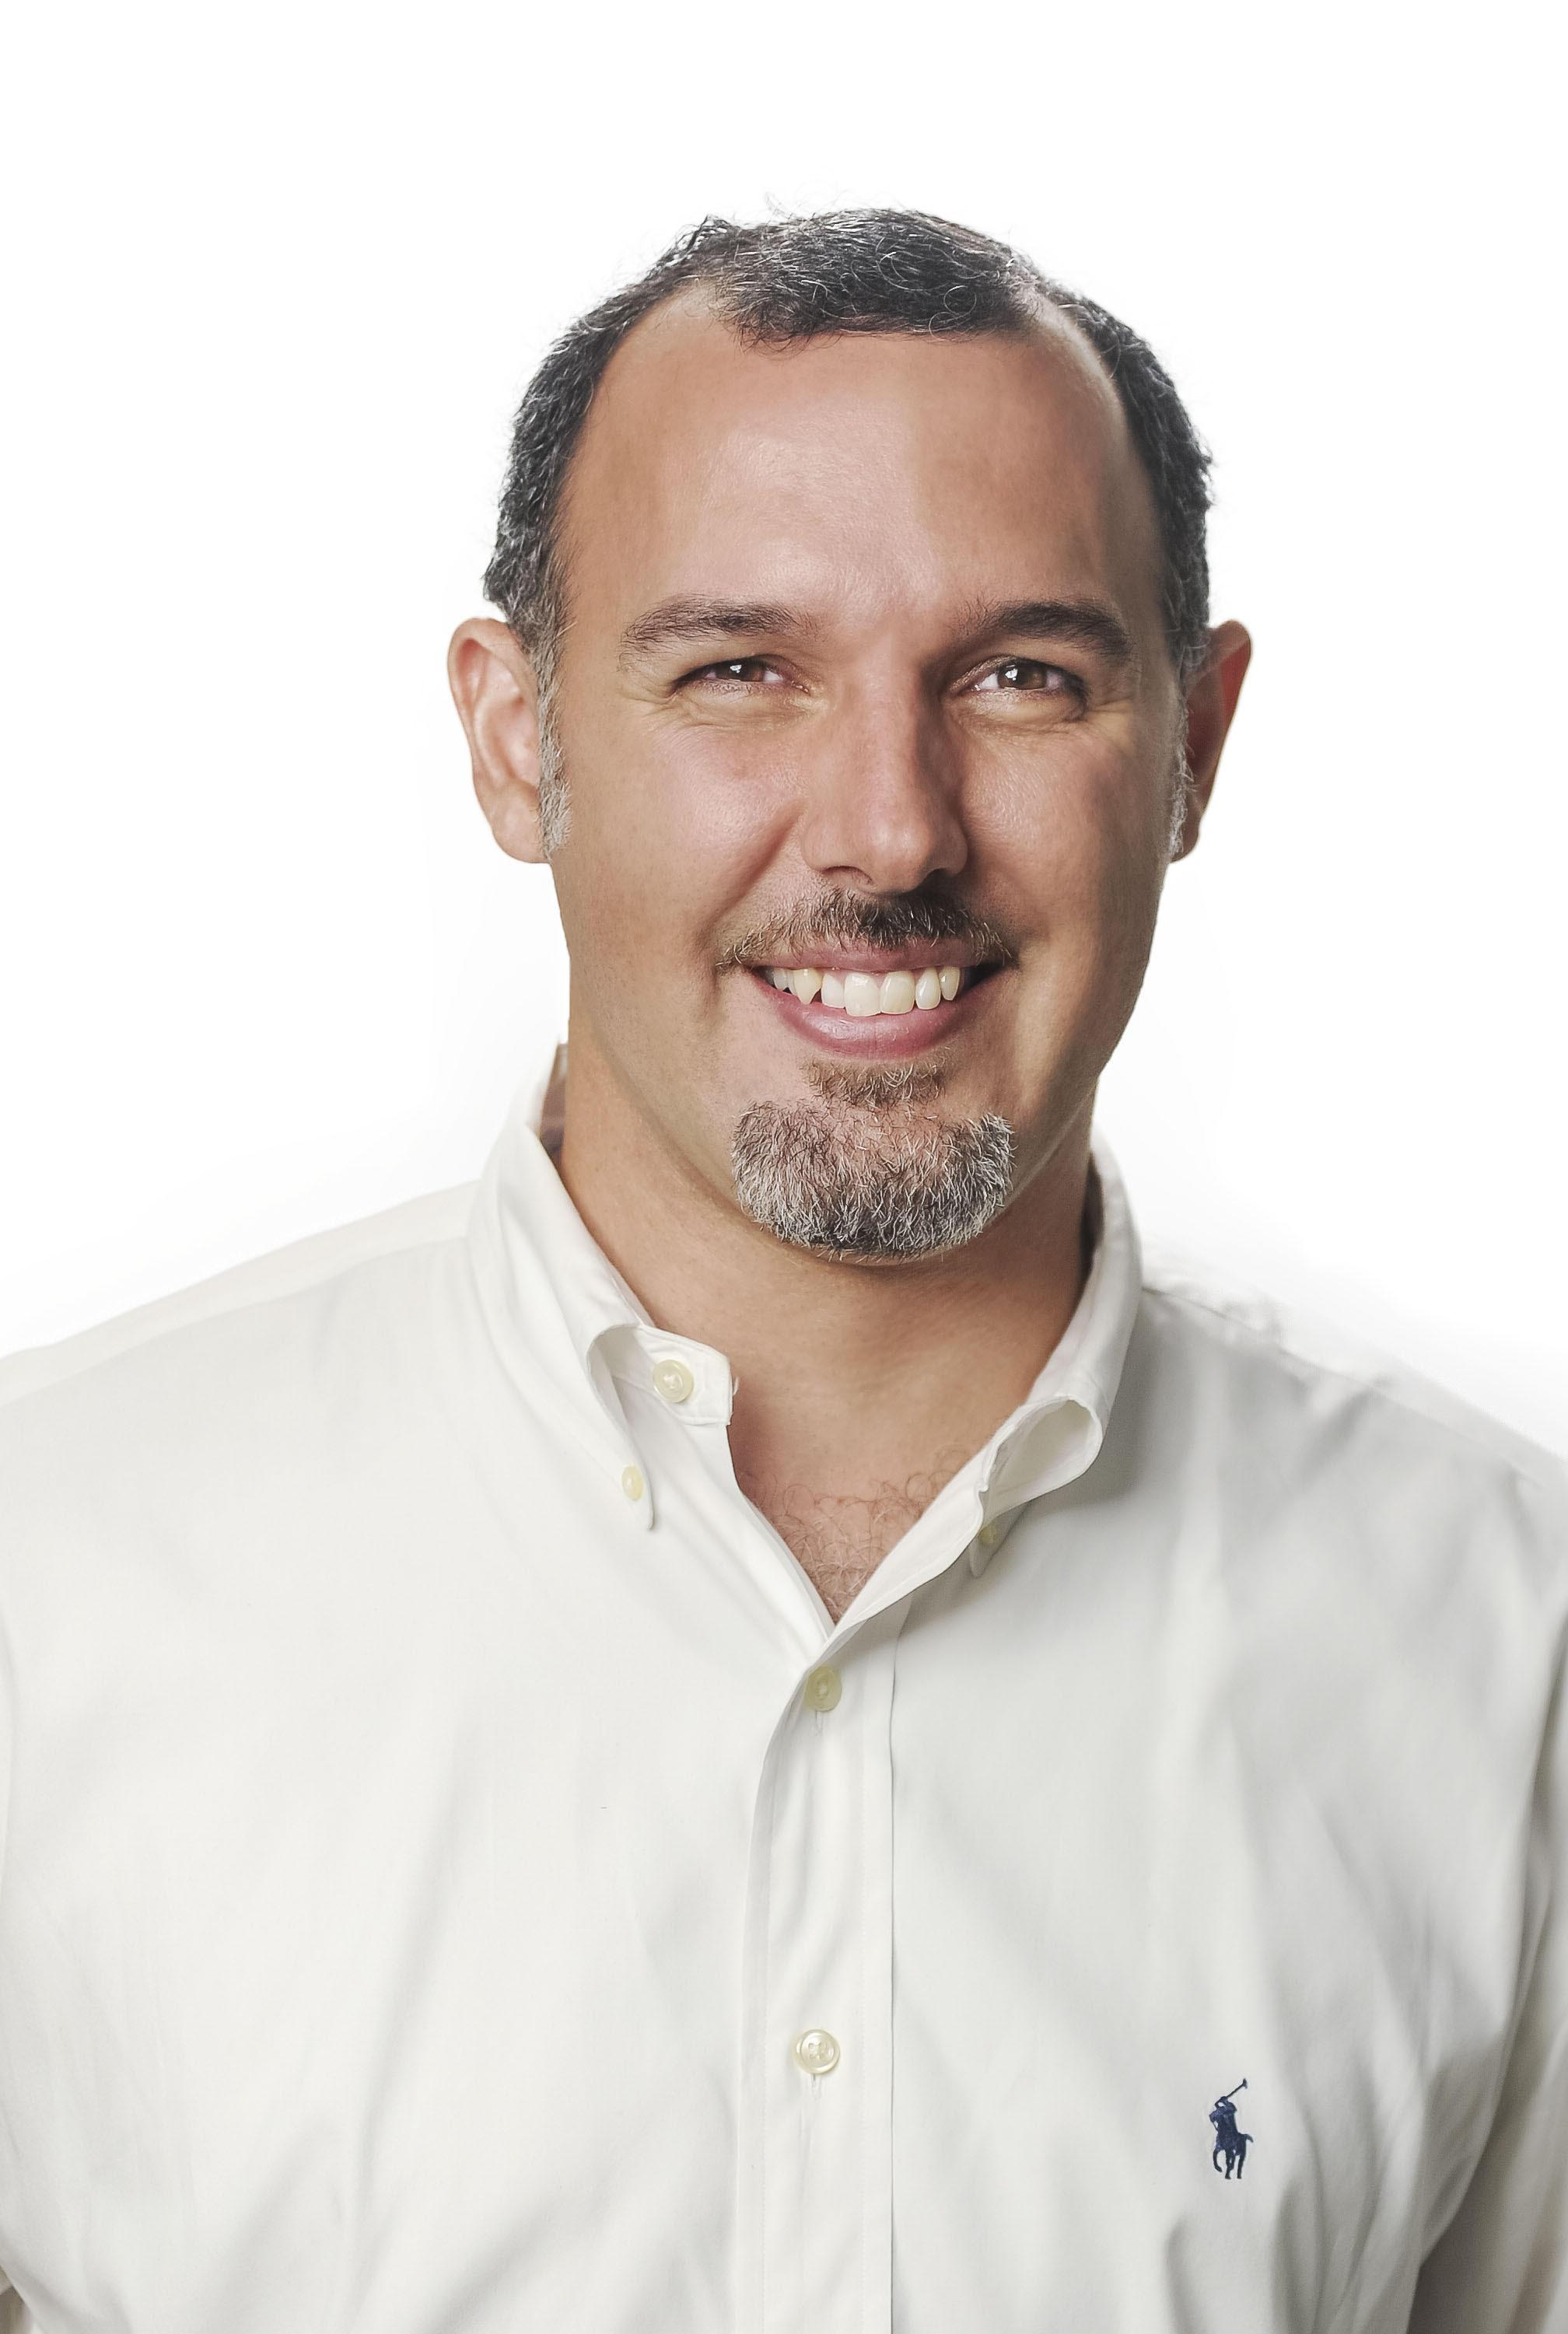 Headshot of Santi Subotovsky, a general partner at Emergence Capital.